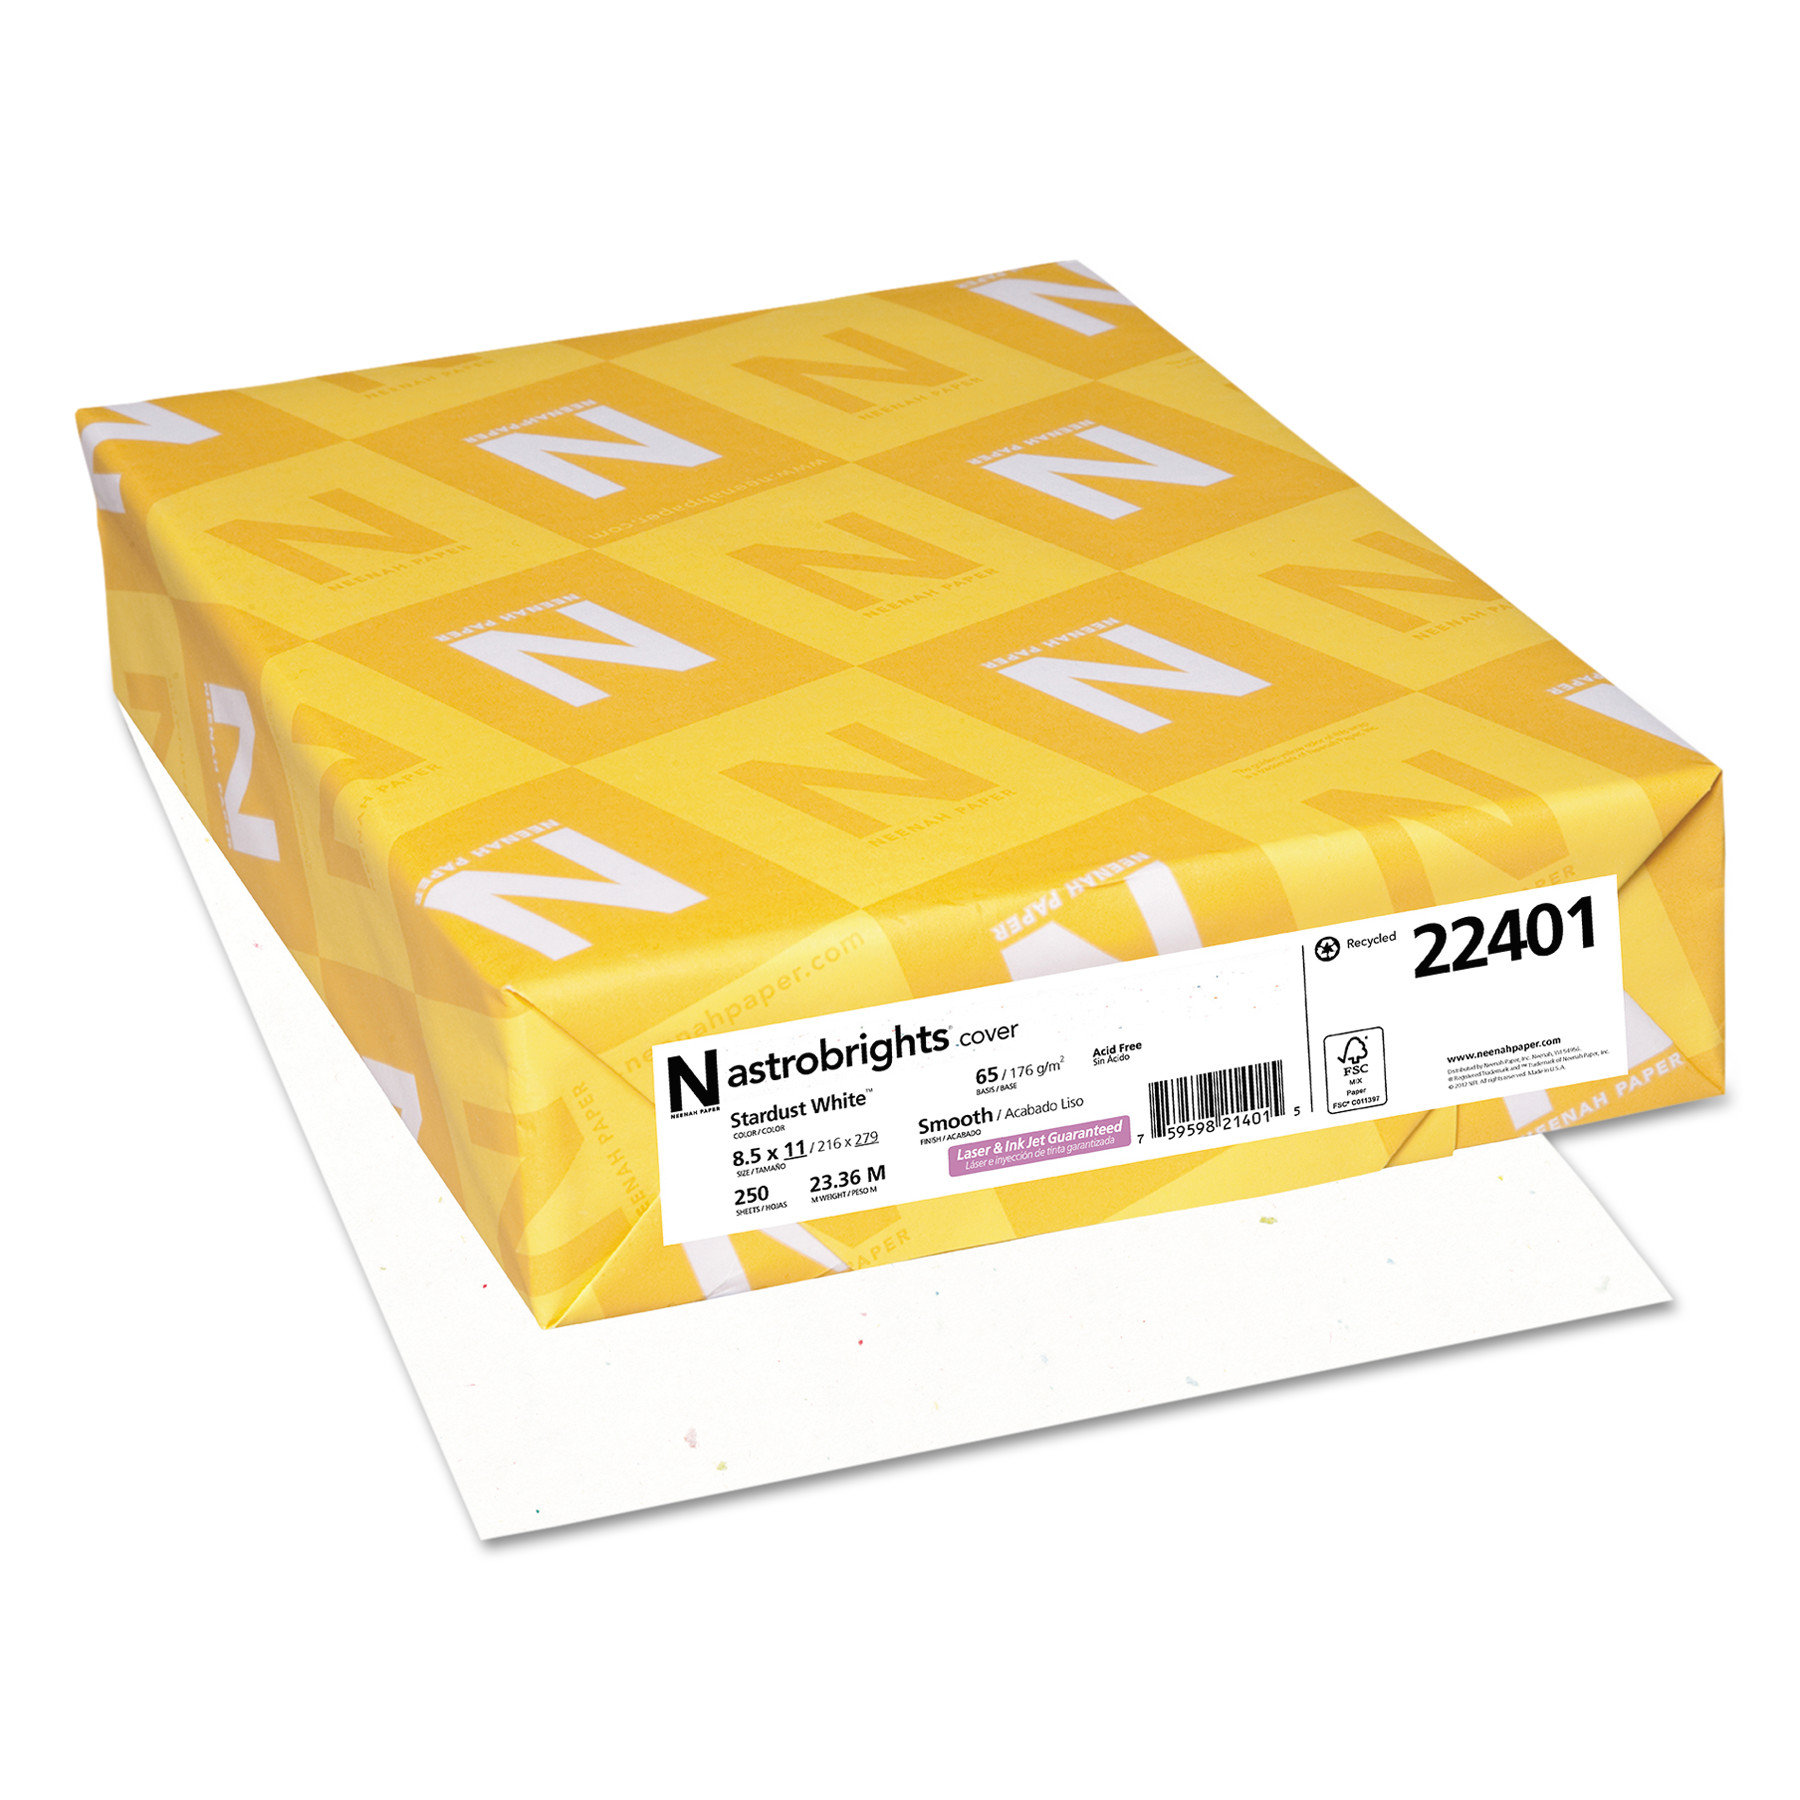 """Astrobrights Colored Card Stock, Stardust White, 8.5"""" X 11"""", 250 Count"""